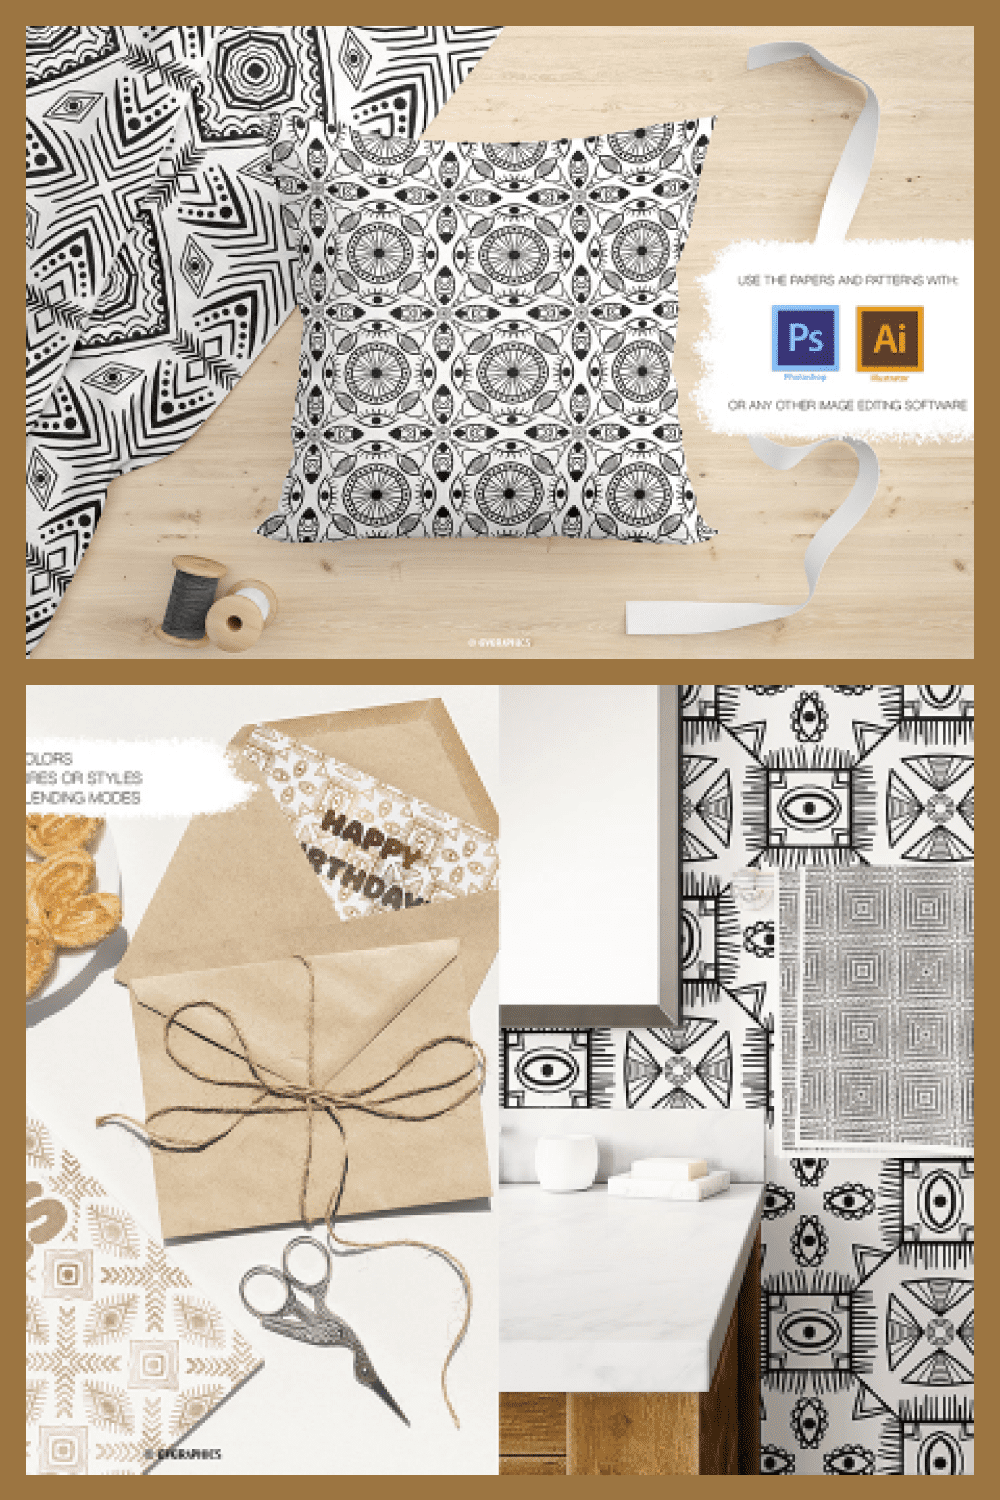 Black and White Vector Patterns and Digital Papers Set 1 - MasterBundles - Pinterest Collage Image.